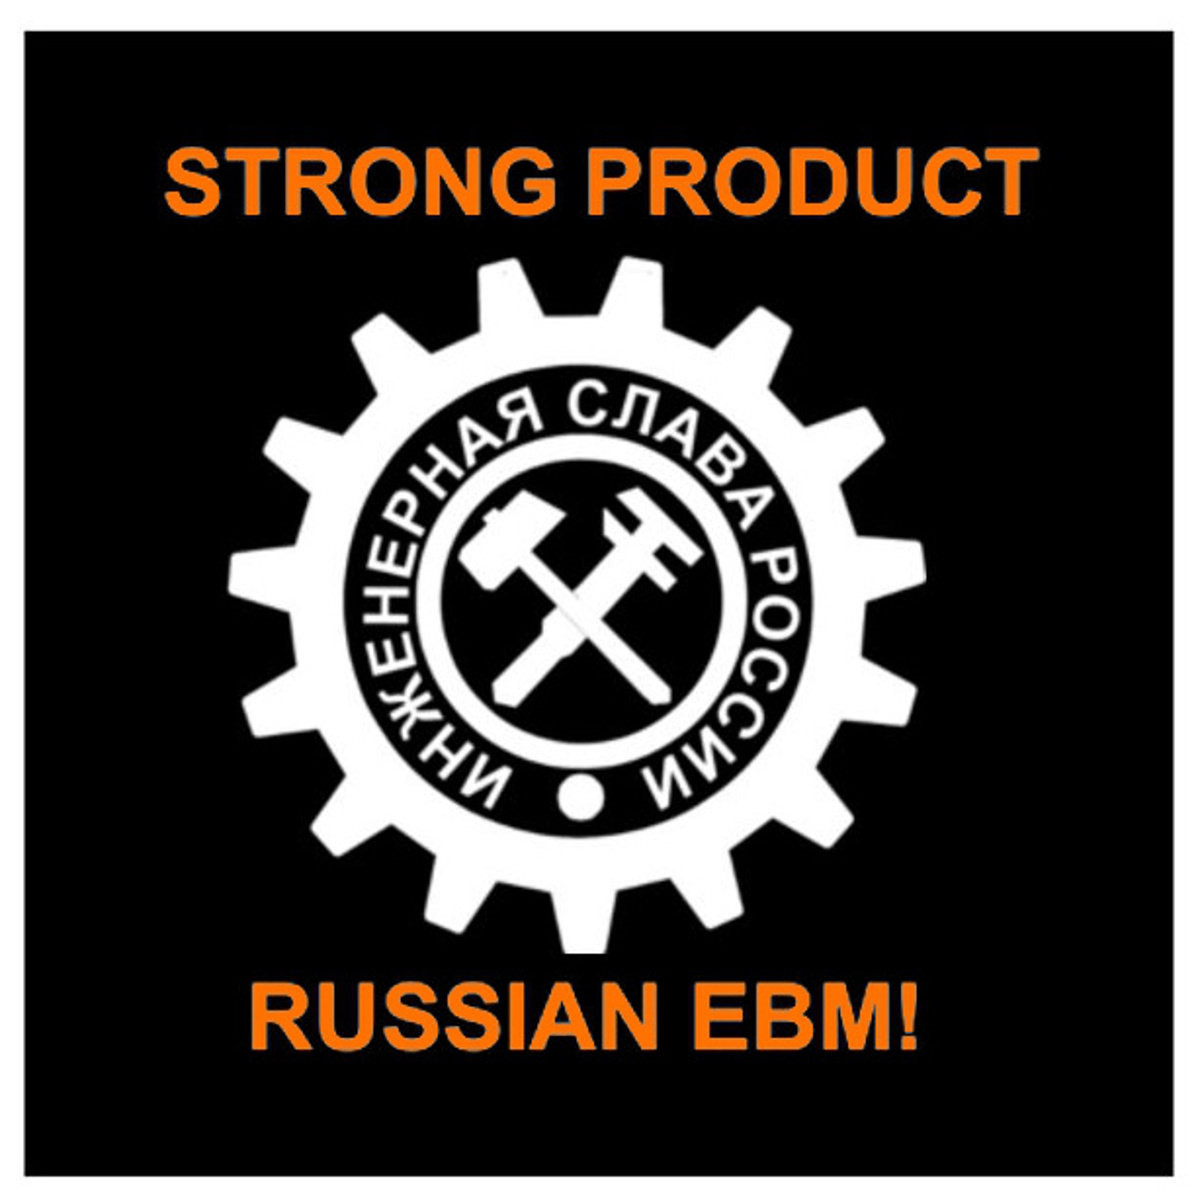 Russian EBM! | Strong Product